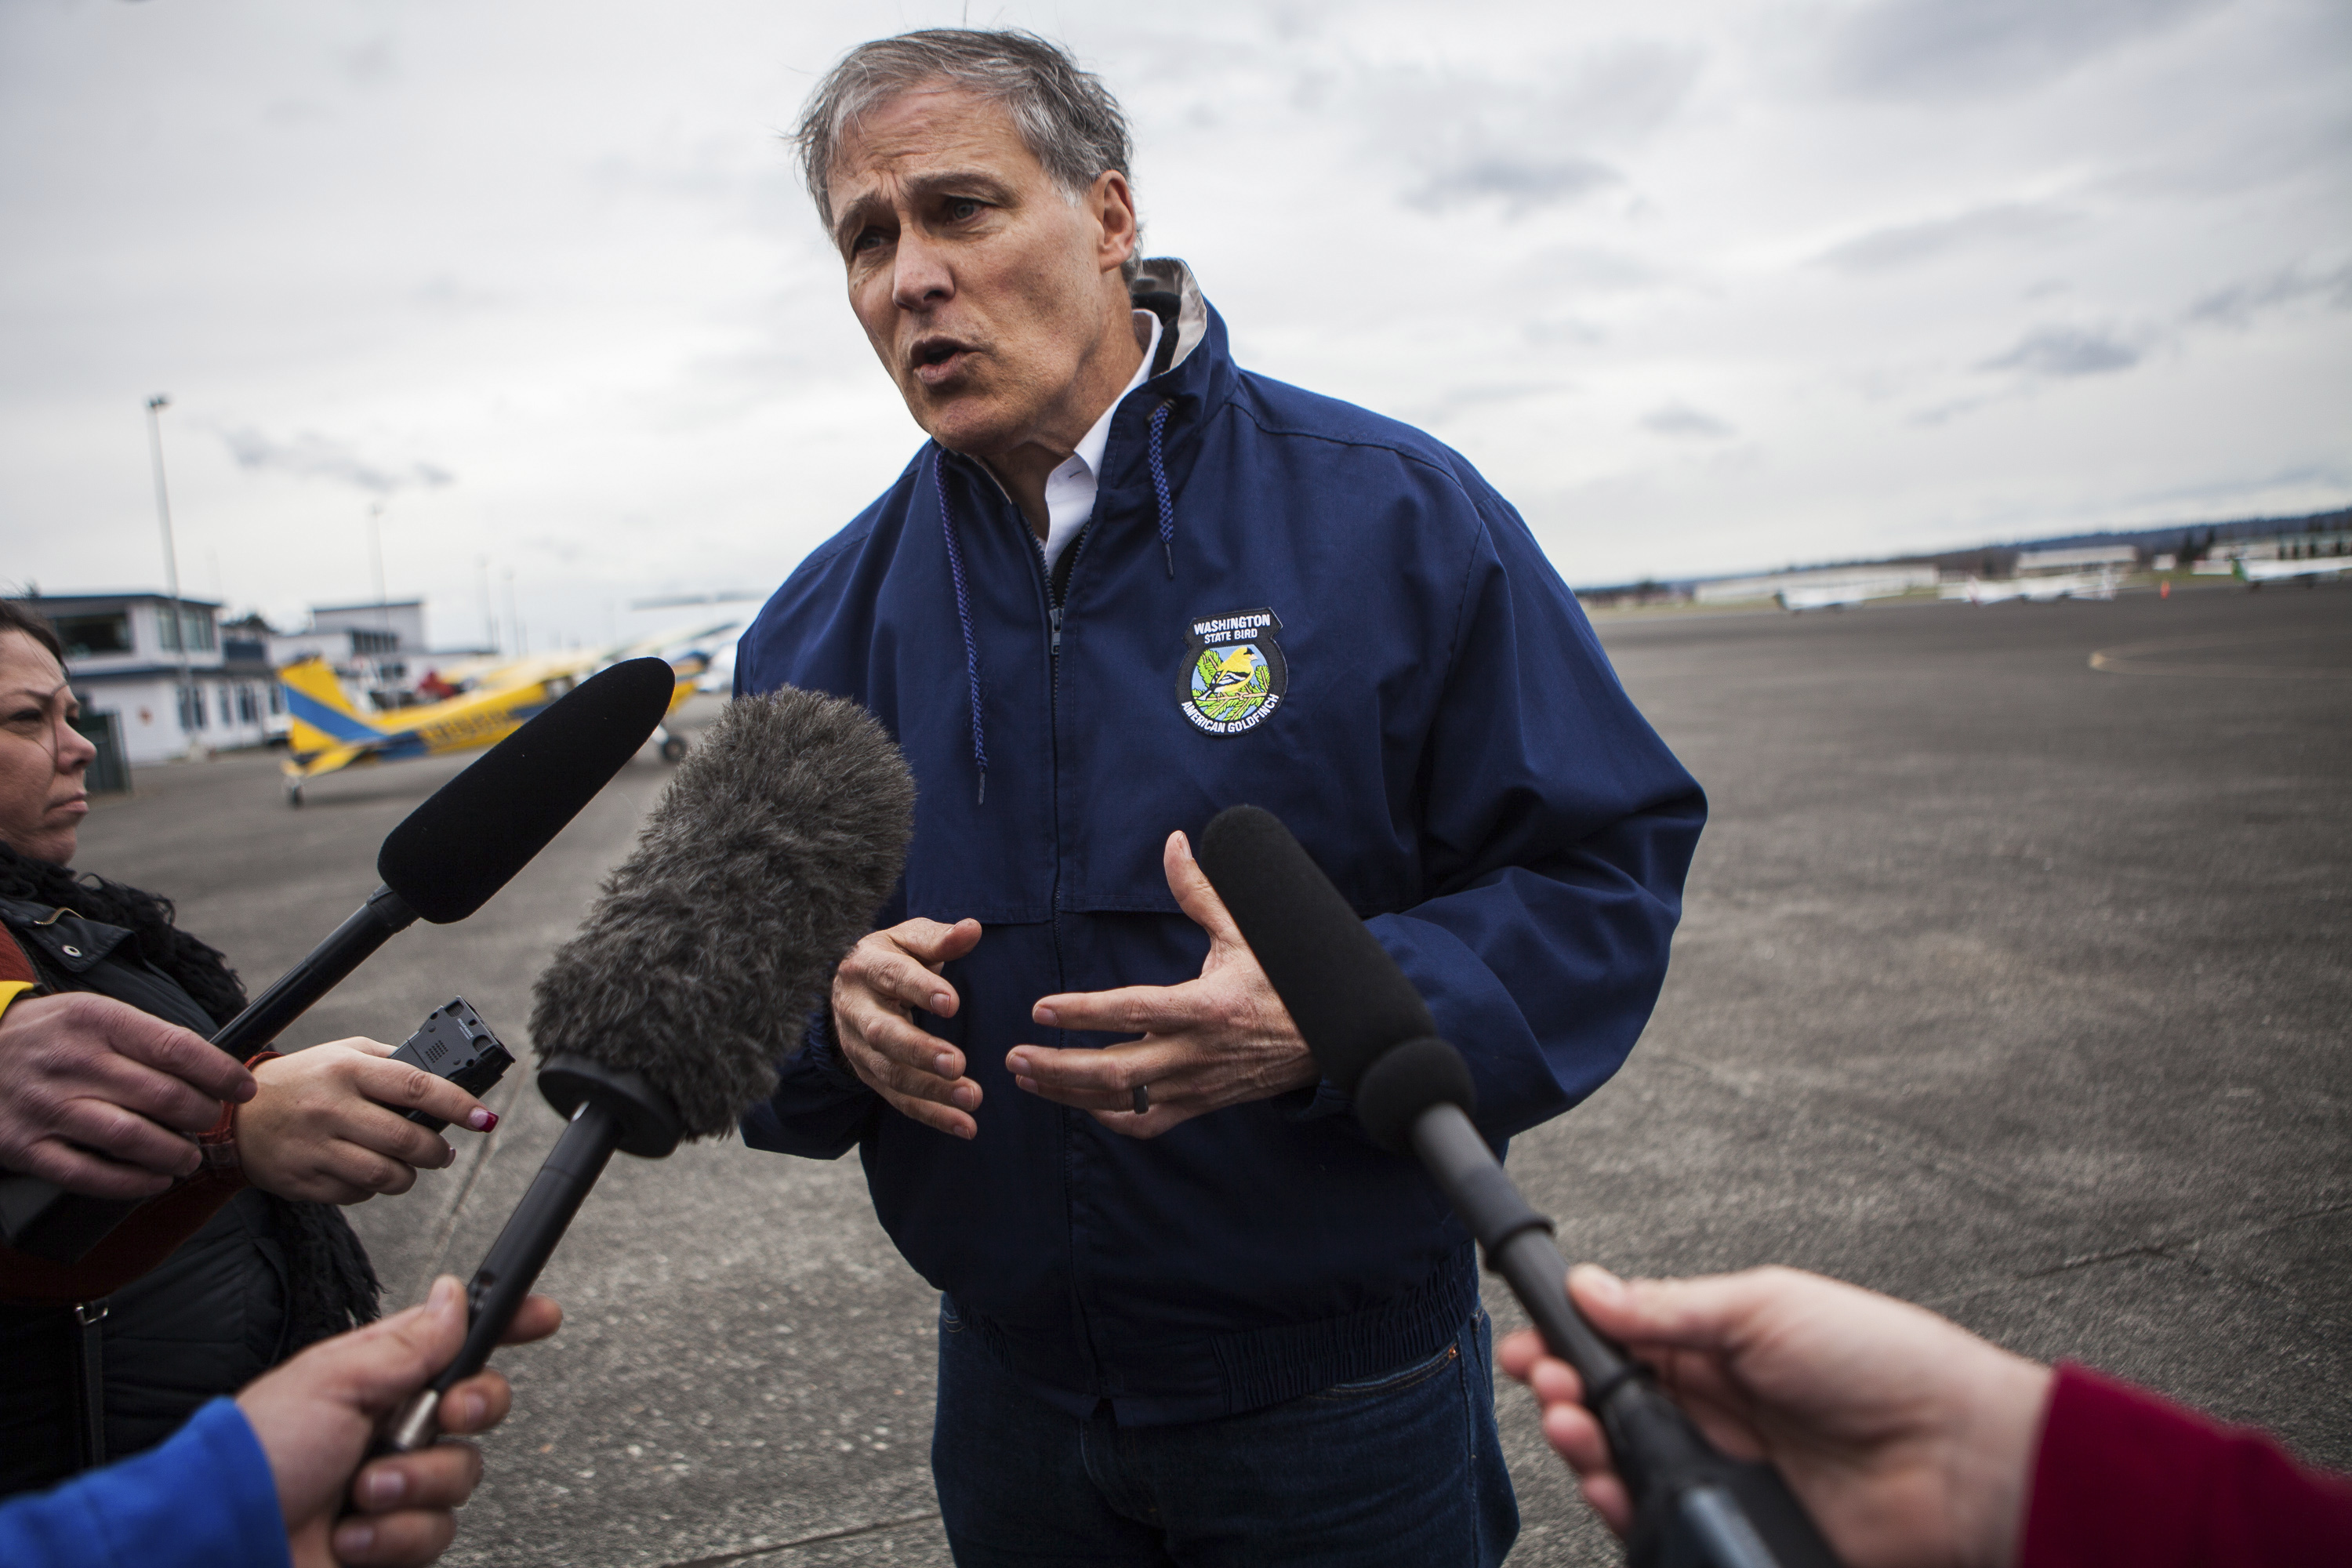 Washington Governor Inslee talks to reporters about ongoing recovery operations for the Oso mudslide, at the Arlington Municipal Airport in Arlington